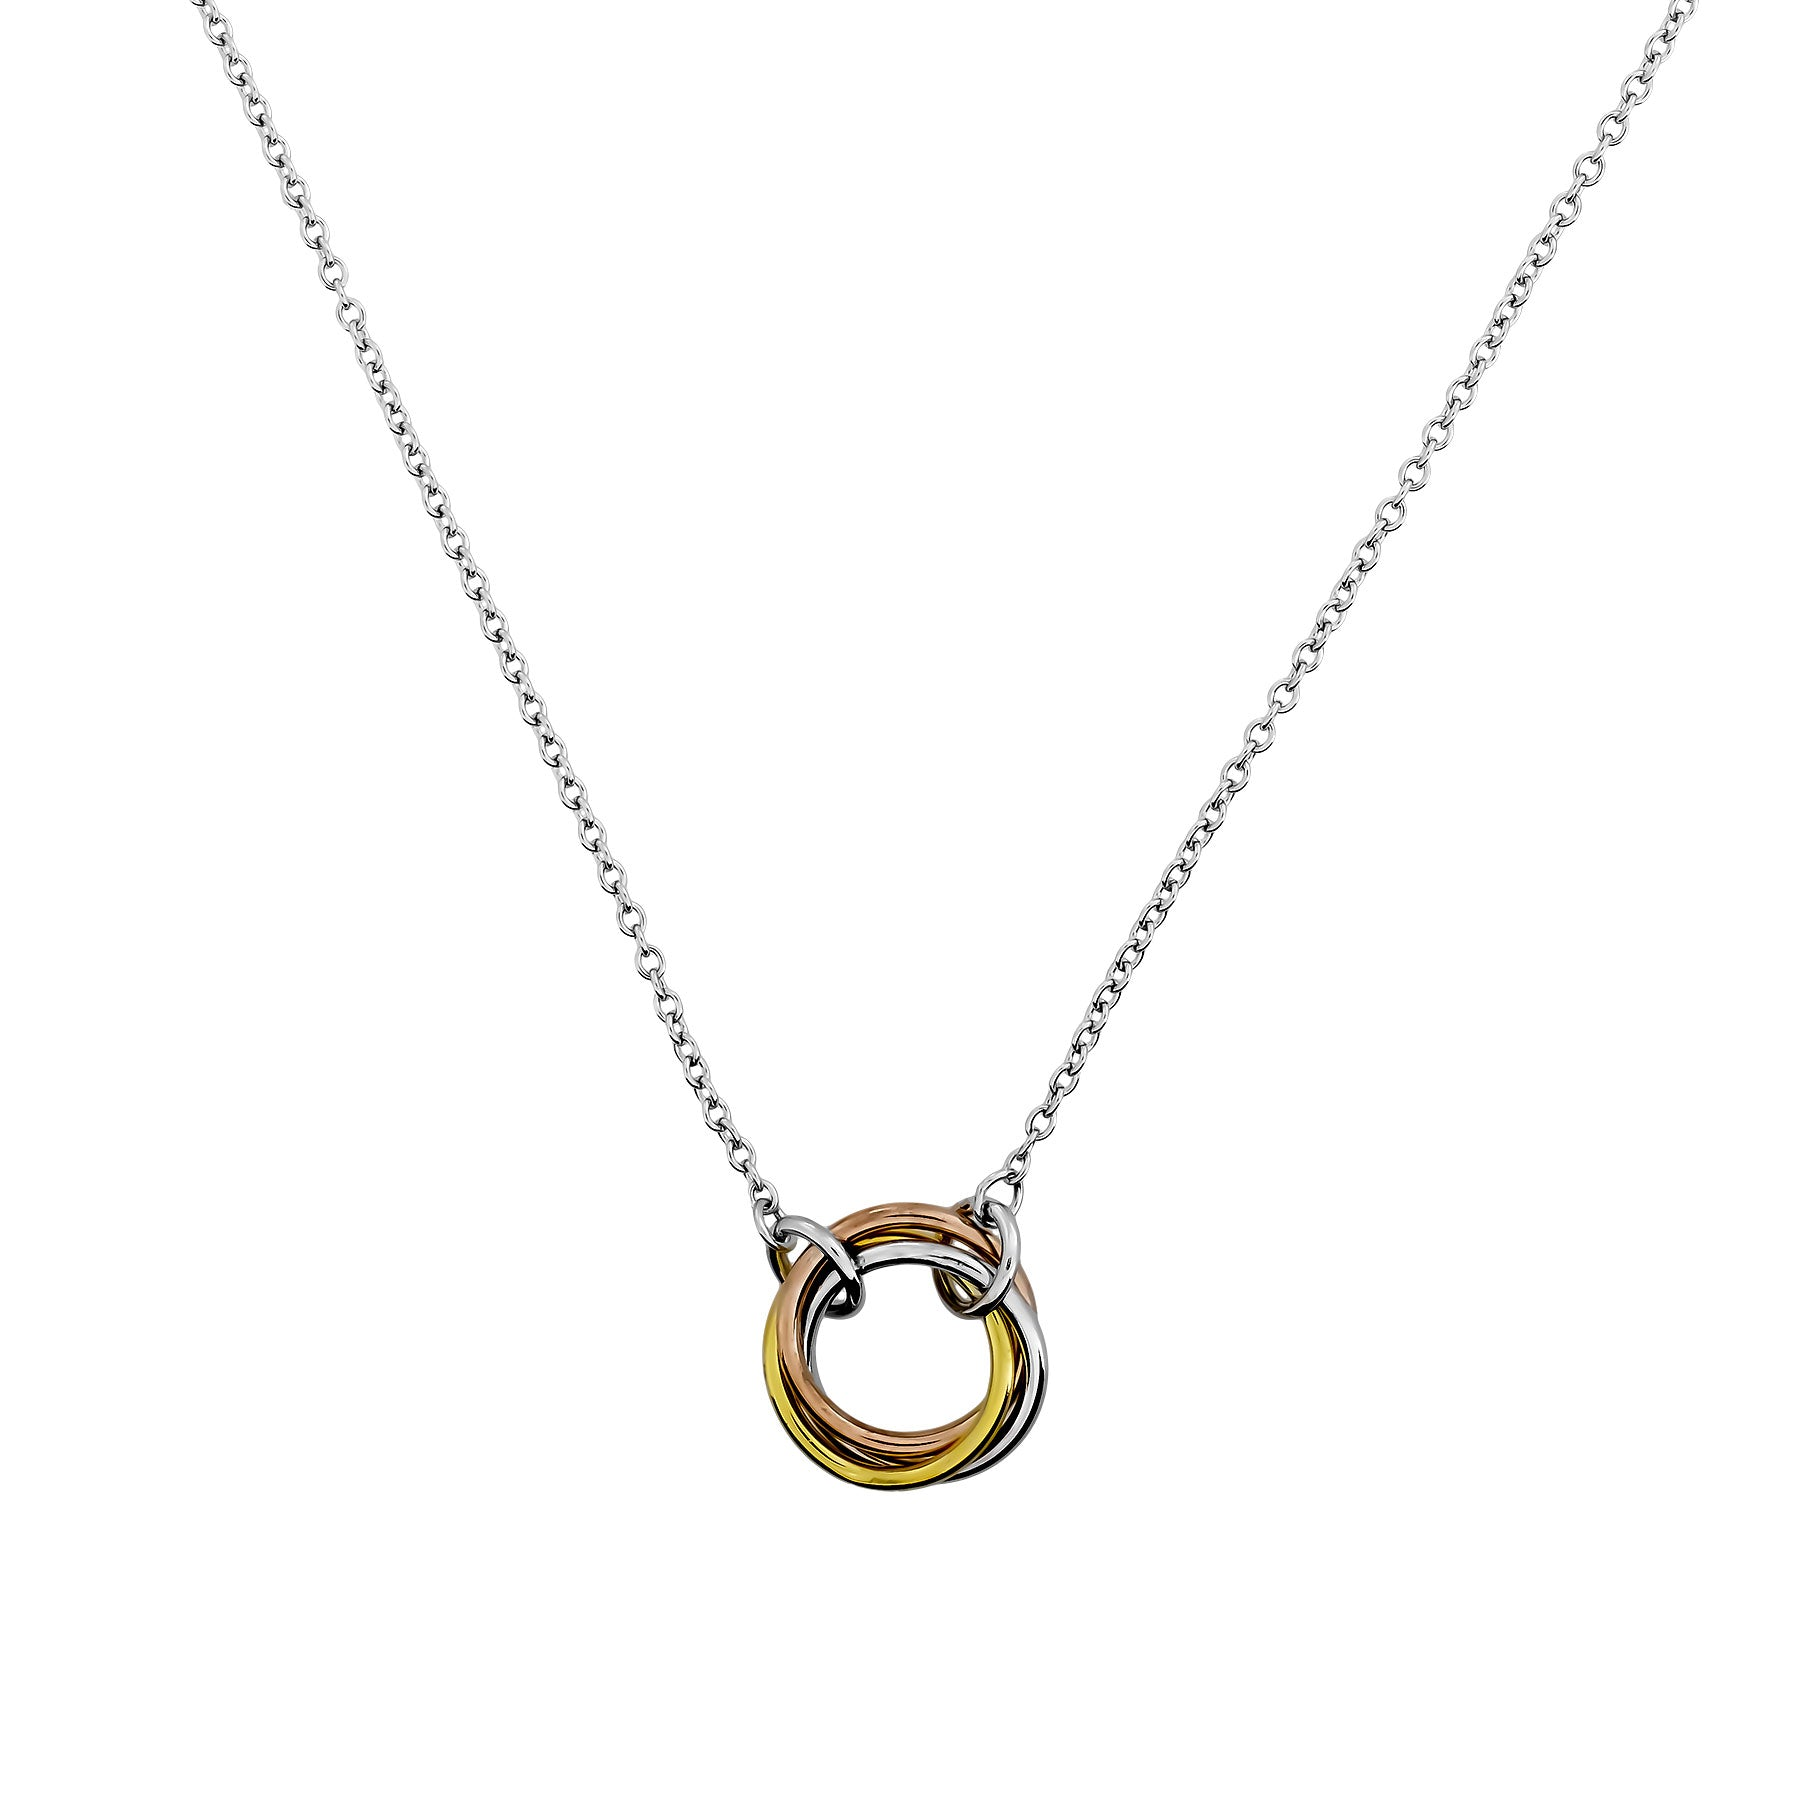 Entangled Love Knot Necklace